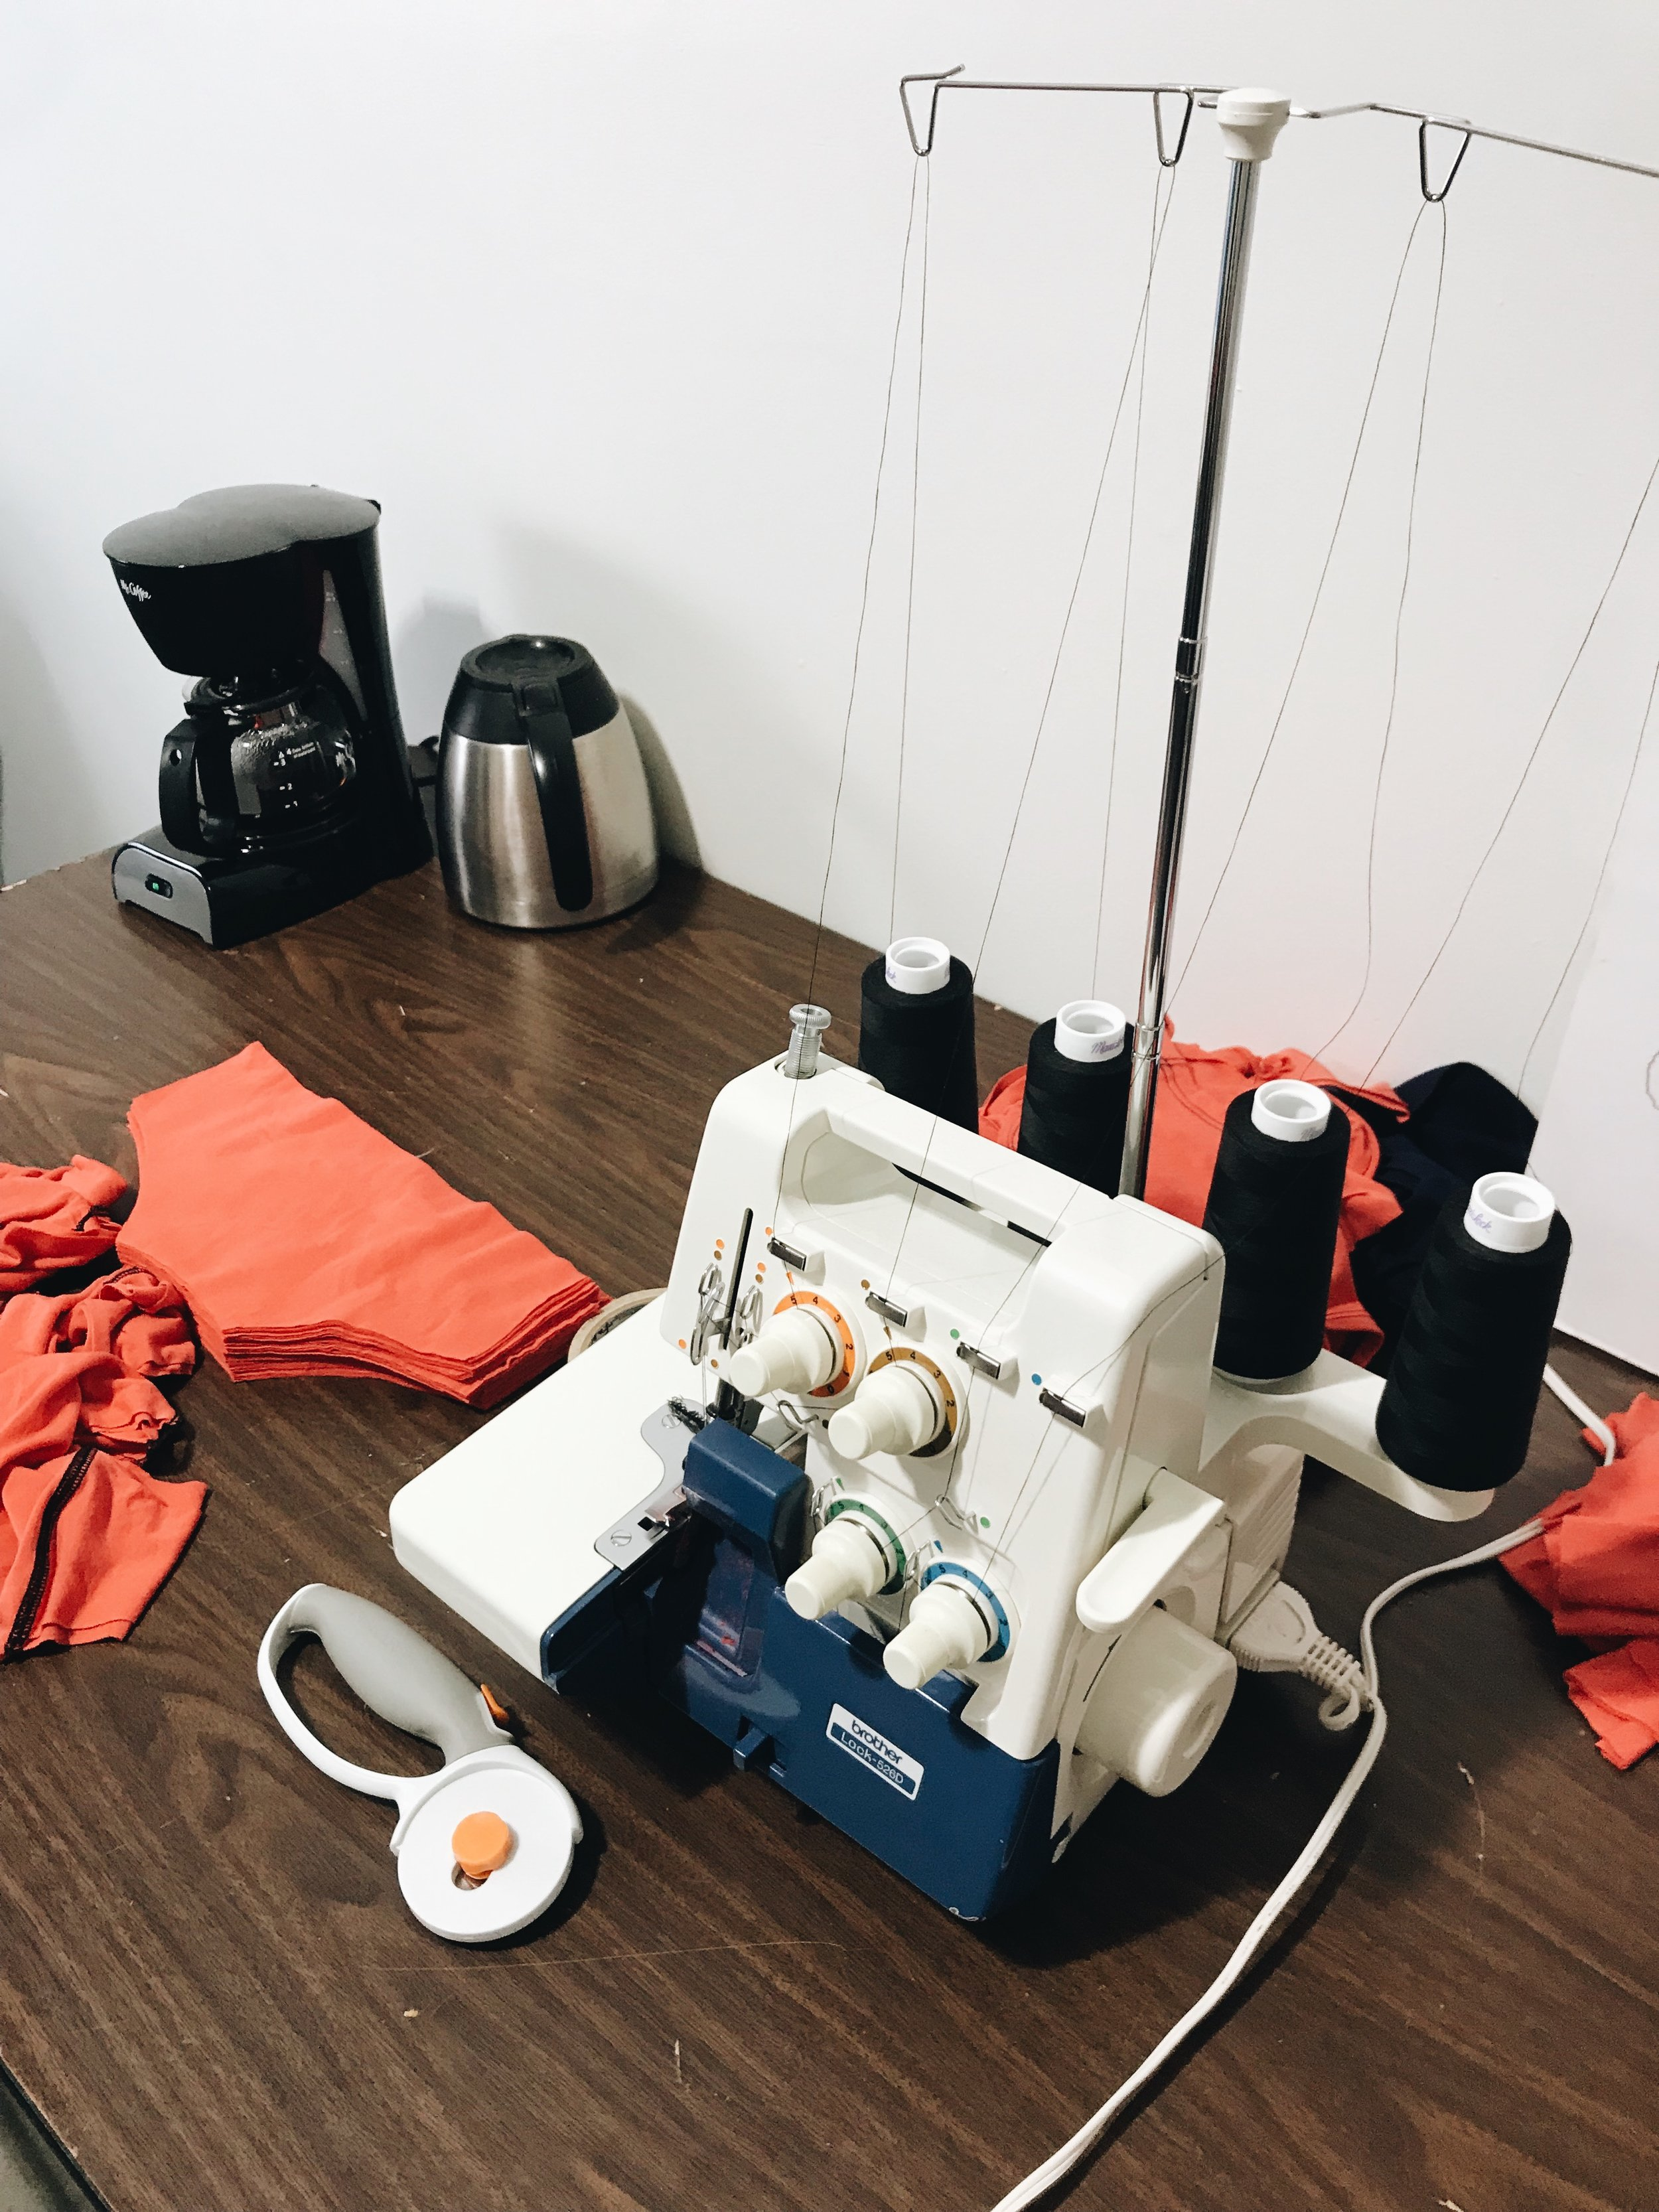 The women learn to cut fabric, sew on an industrial machine and finish with a serger.